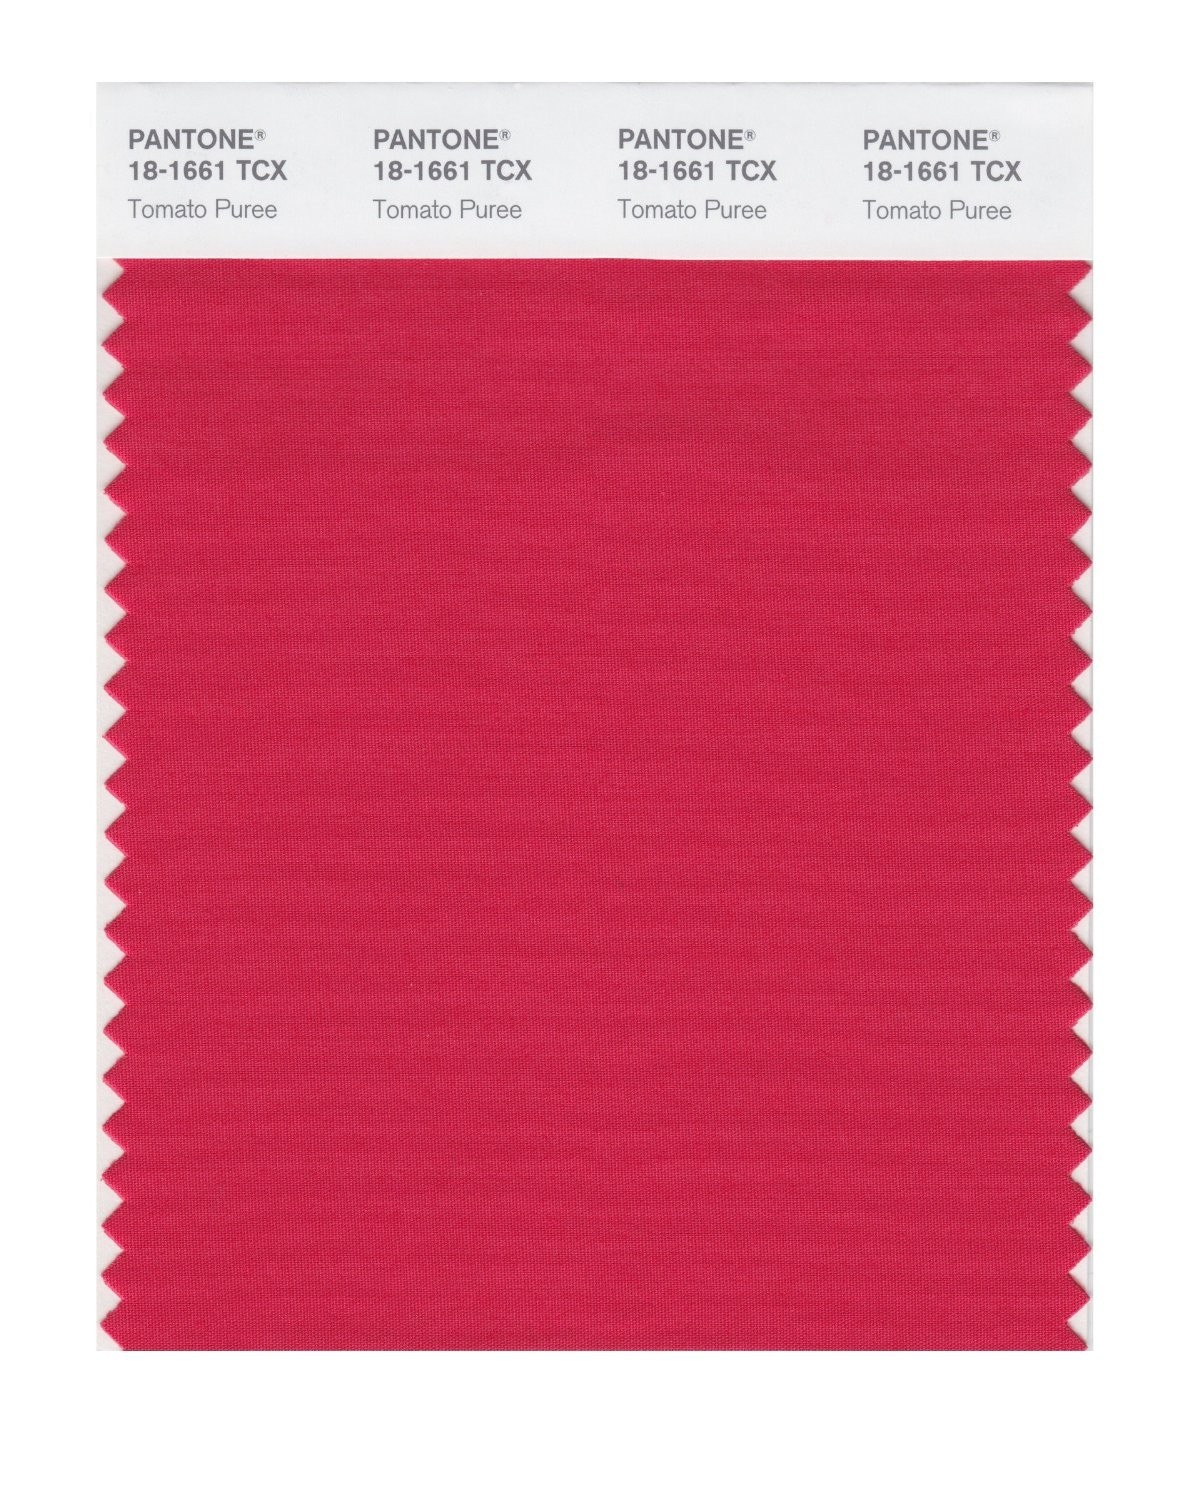 Pantone 18-1661 TCX Swatch Card Tomato Puree